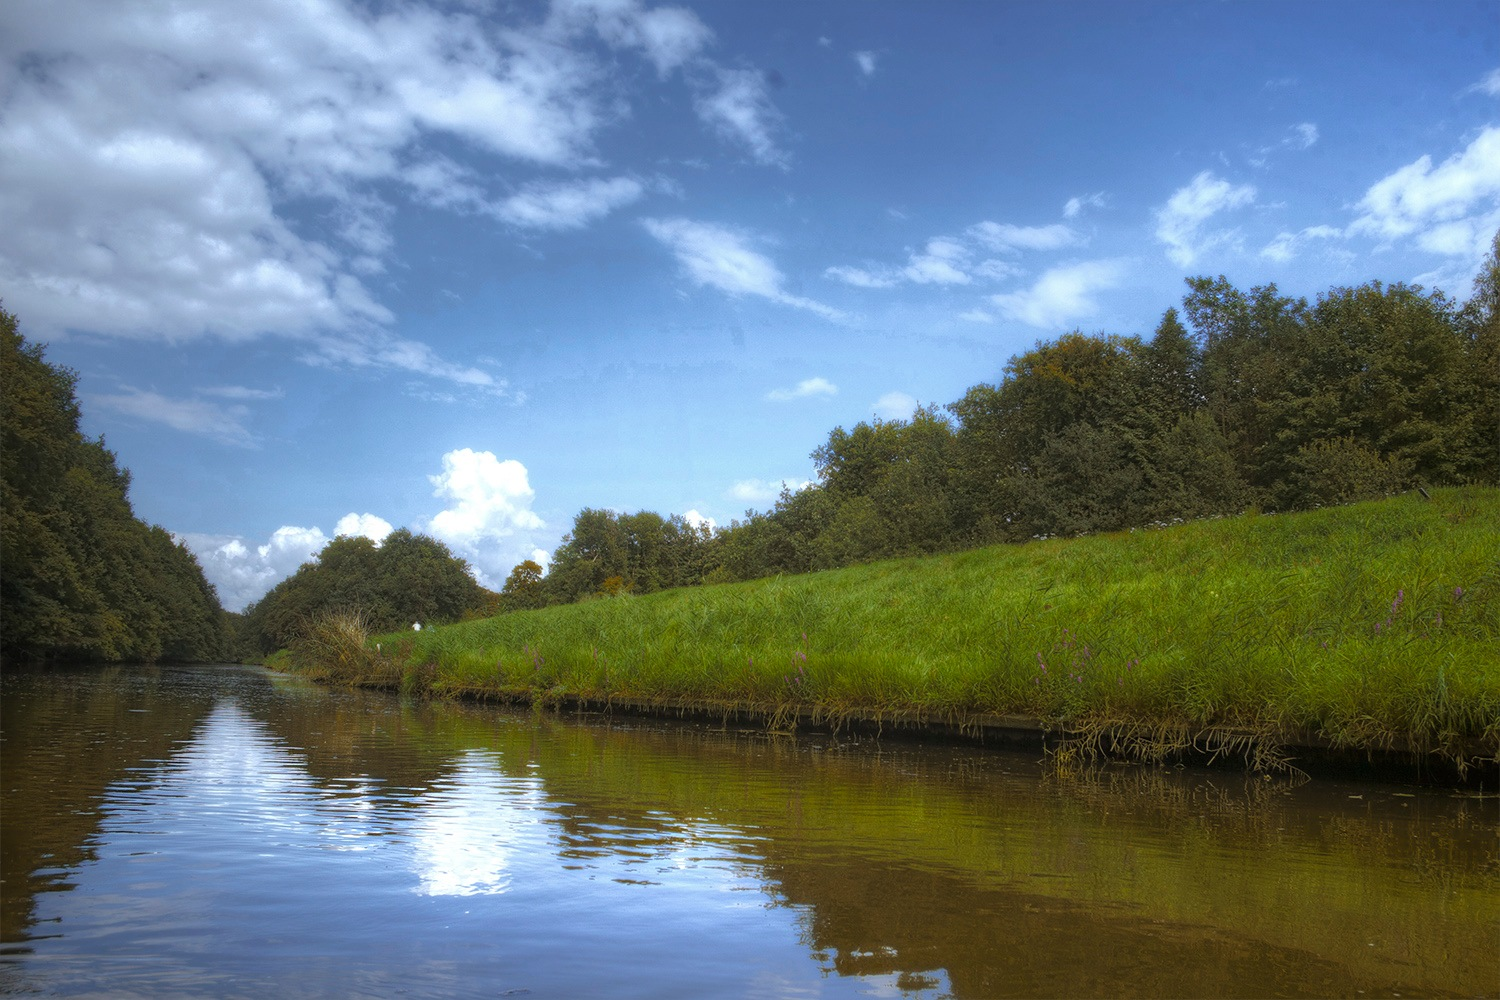 canal by harald.seiwert